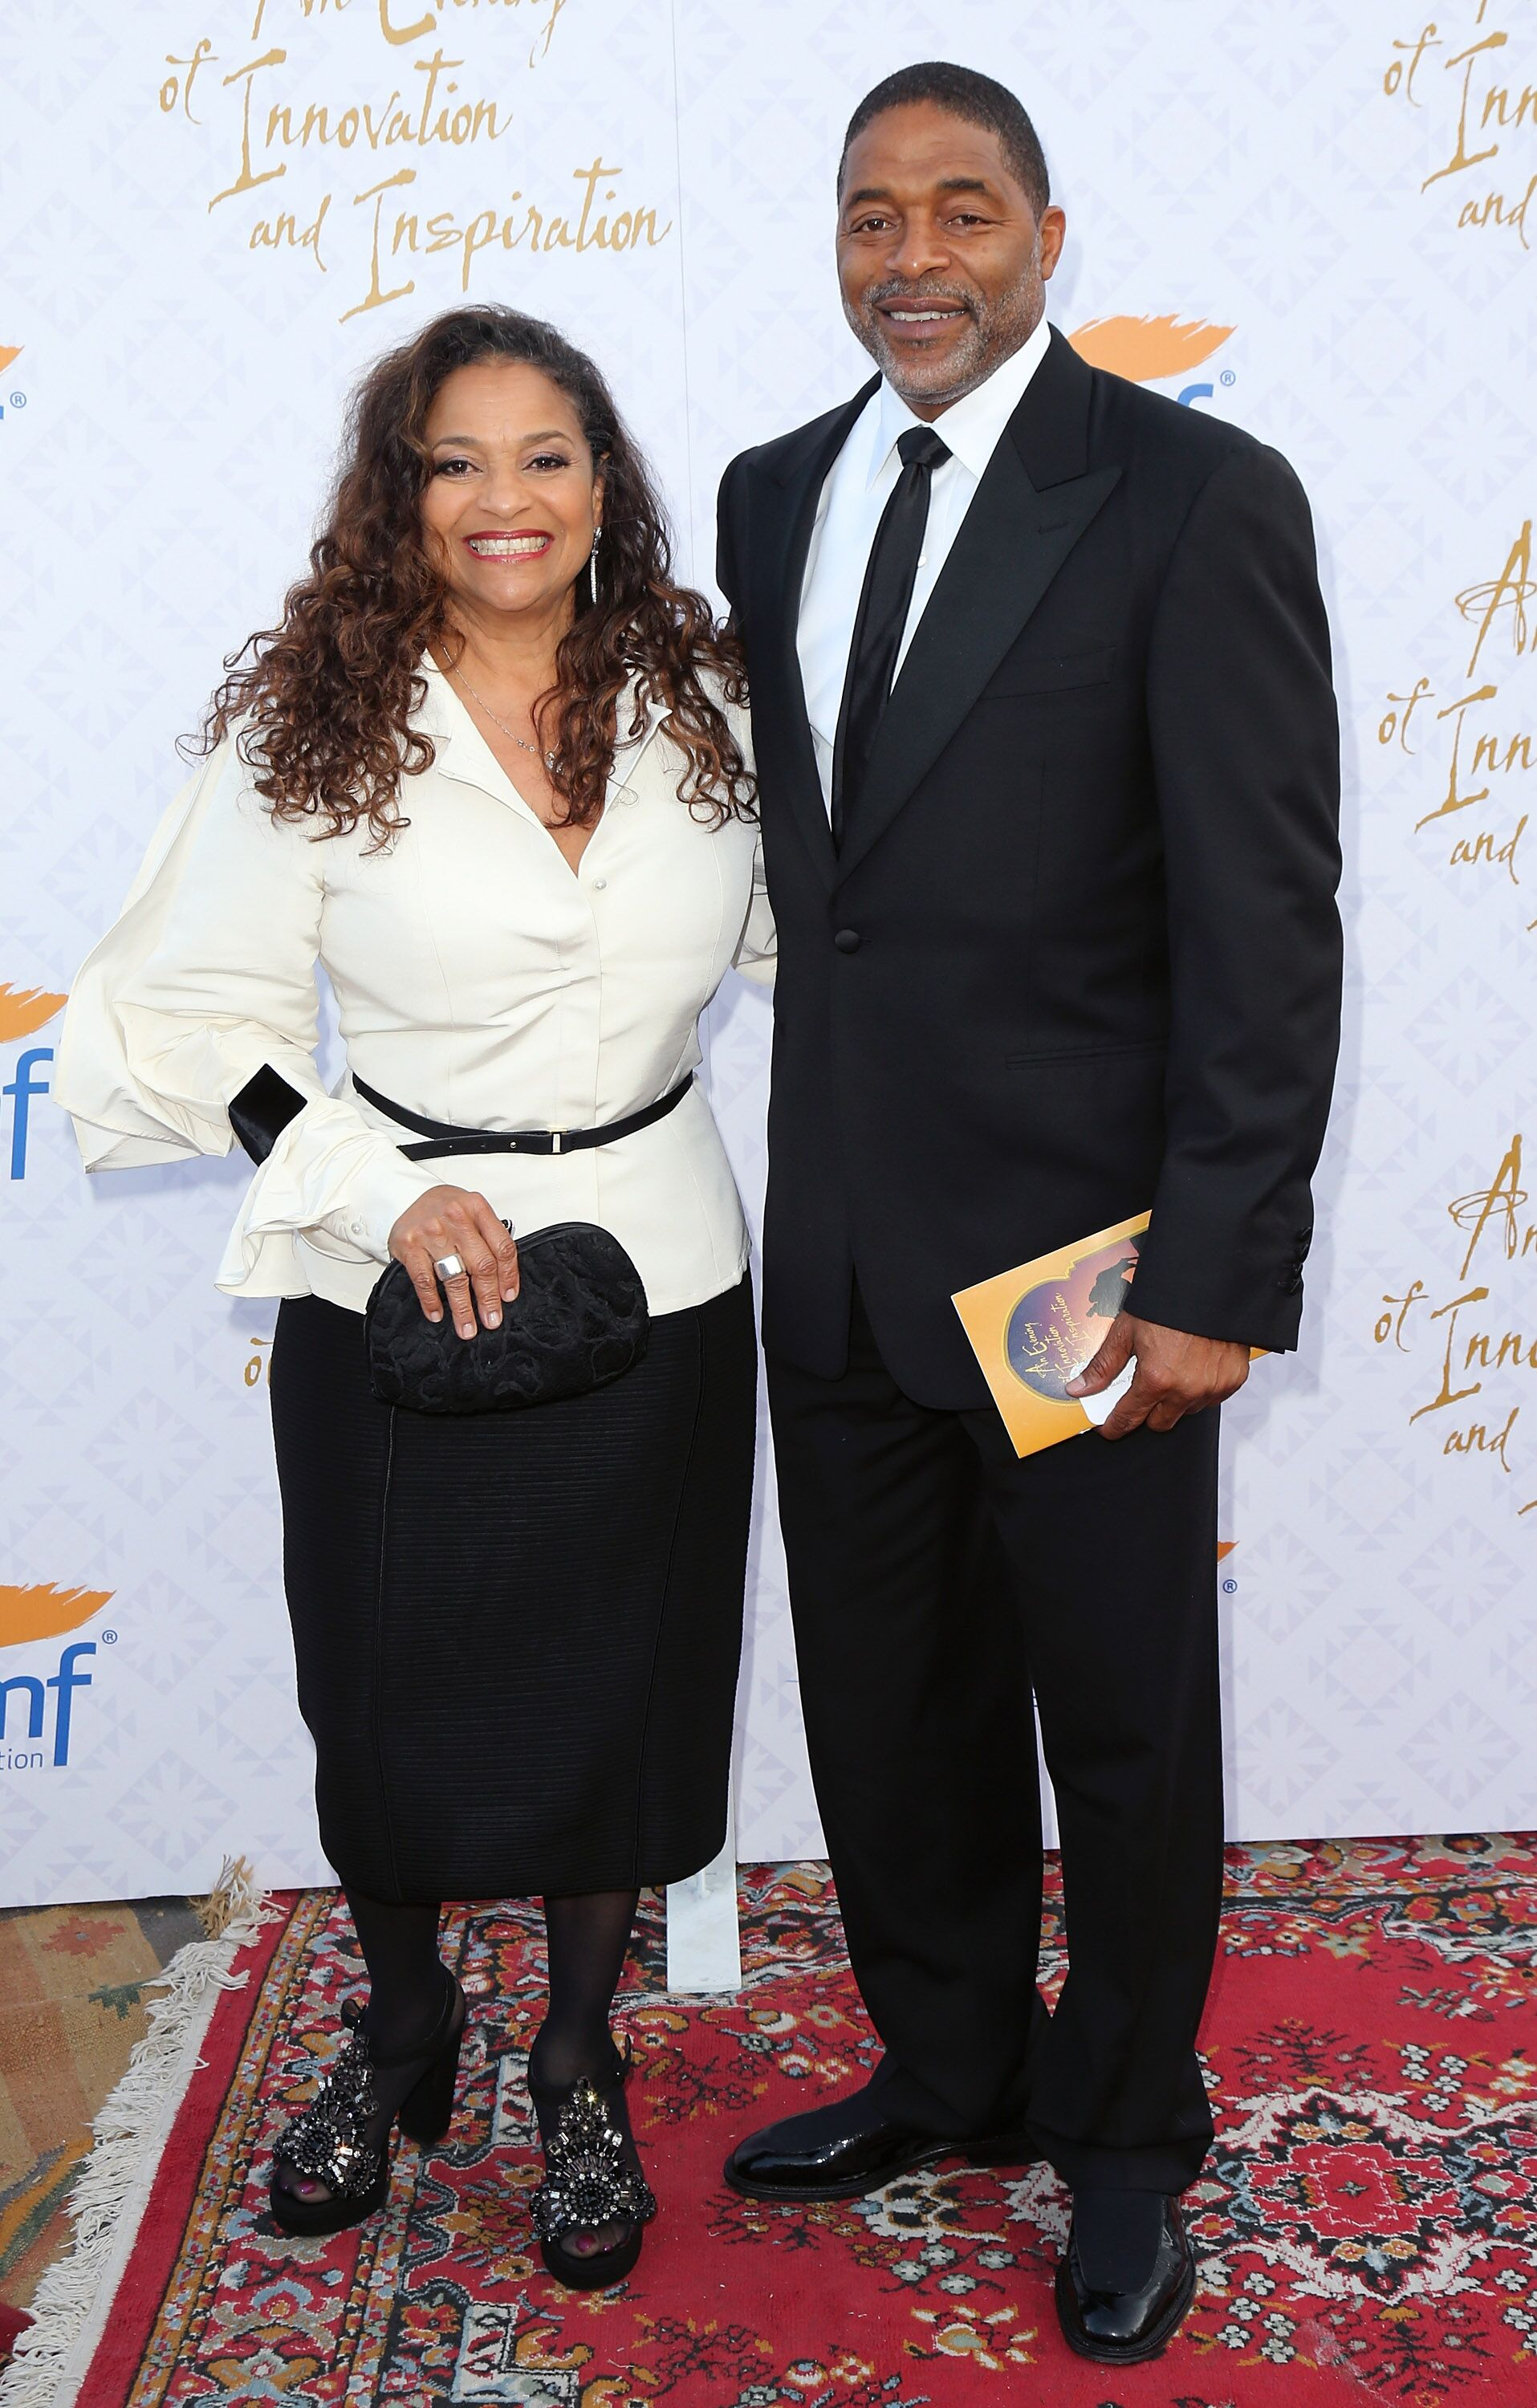 Actress Debbie Allen and husband Norm Nixon attend the 10th Annual Alfred Mann Foundation Gala in the Robinsons-May Lot on October 13, 2013 in Beverly Hills, California | Photo: Getty Images